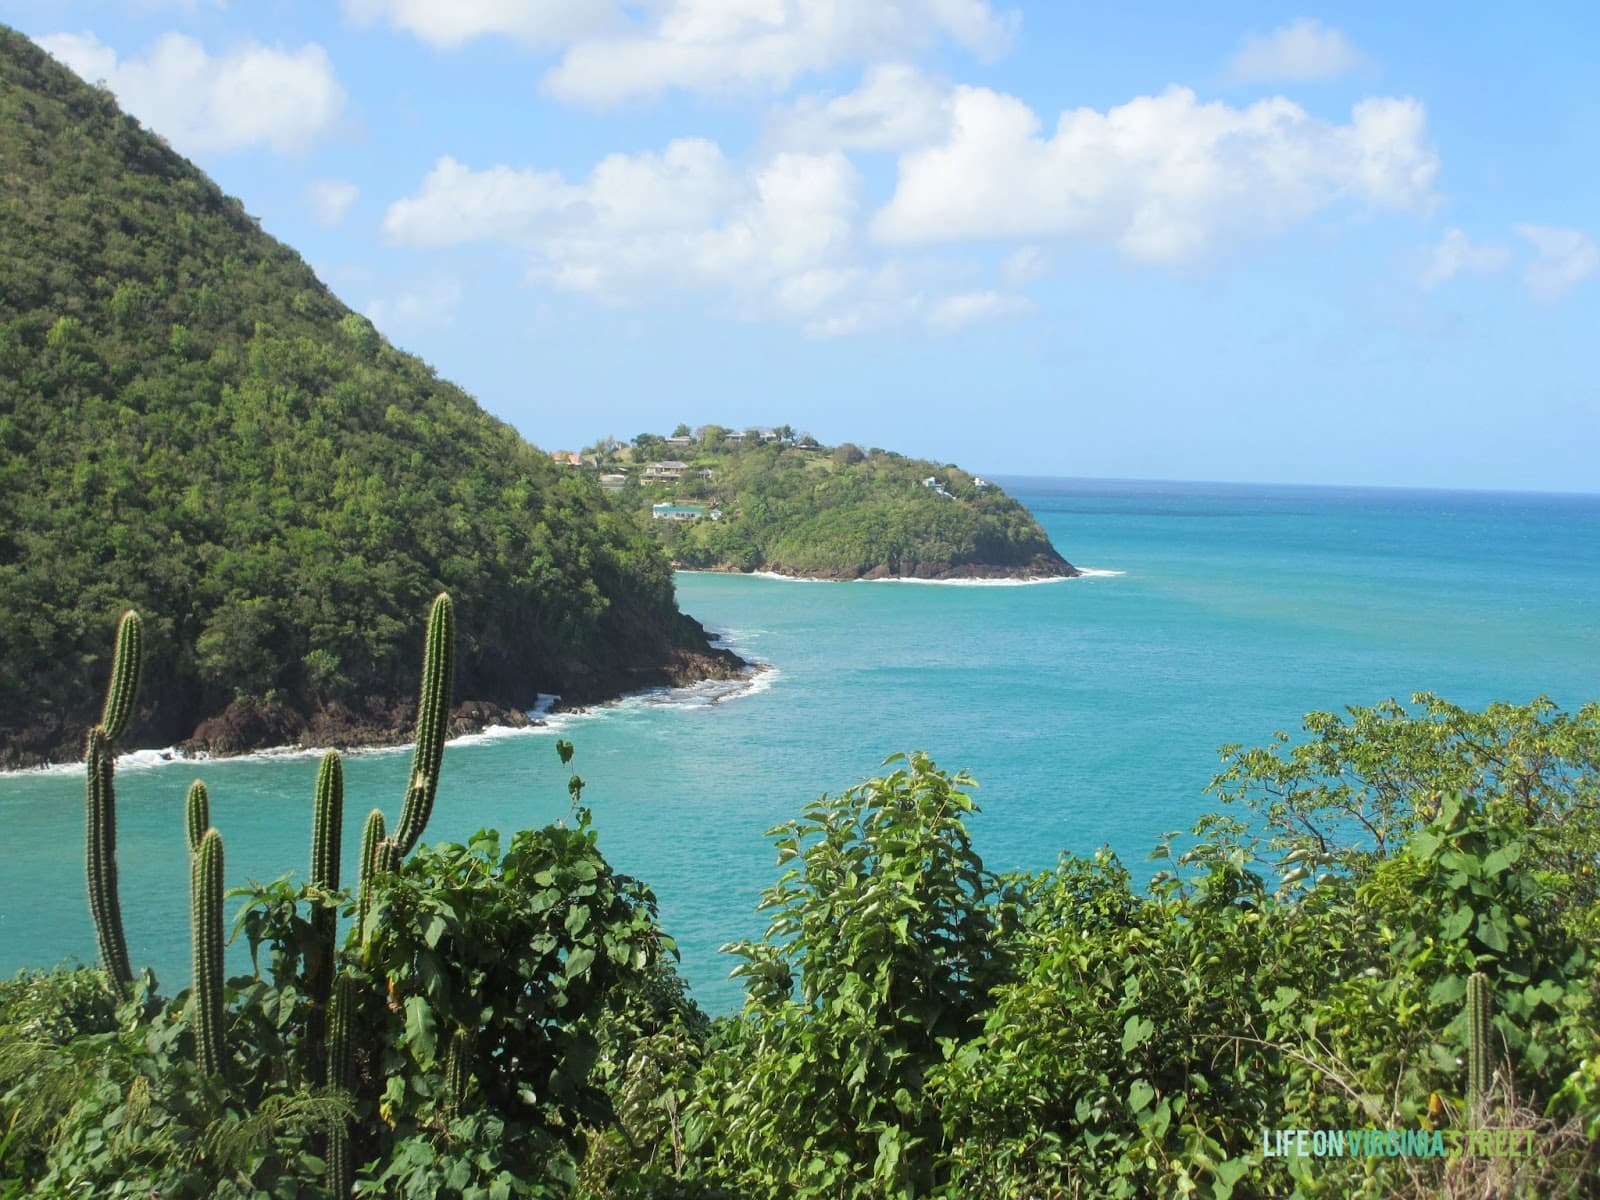 Large hills with turquoise blue water and lush greenery.